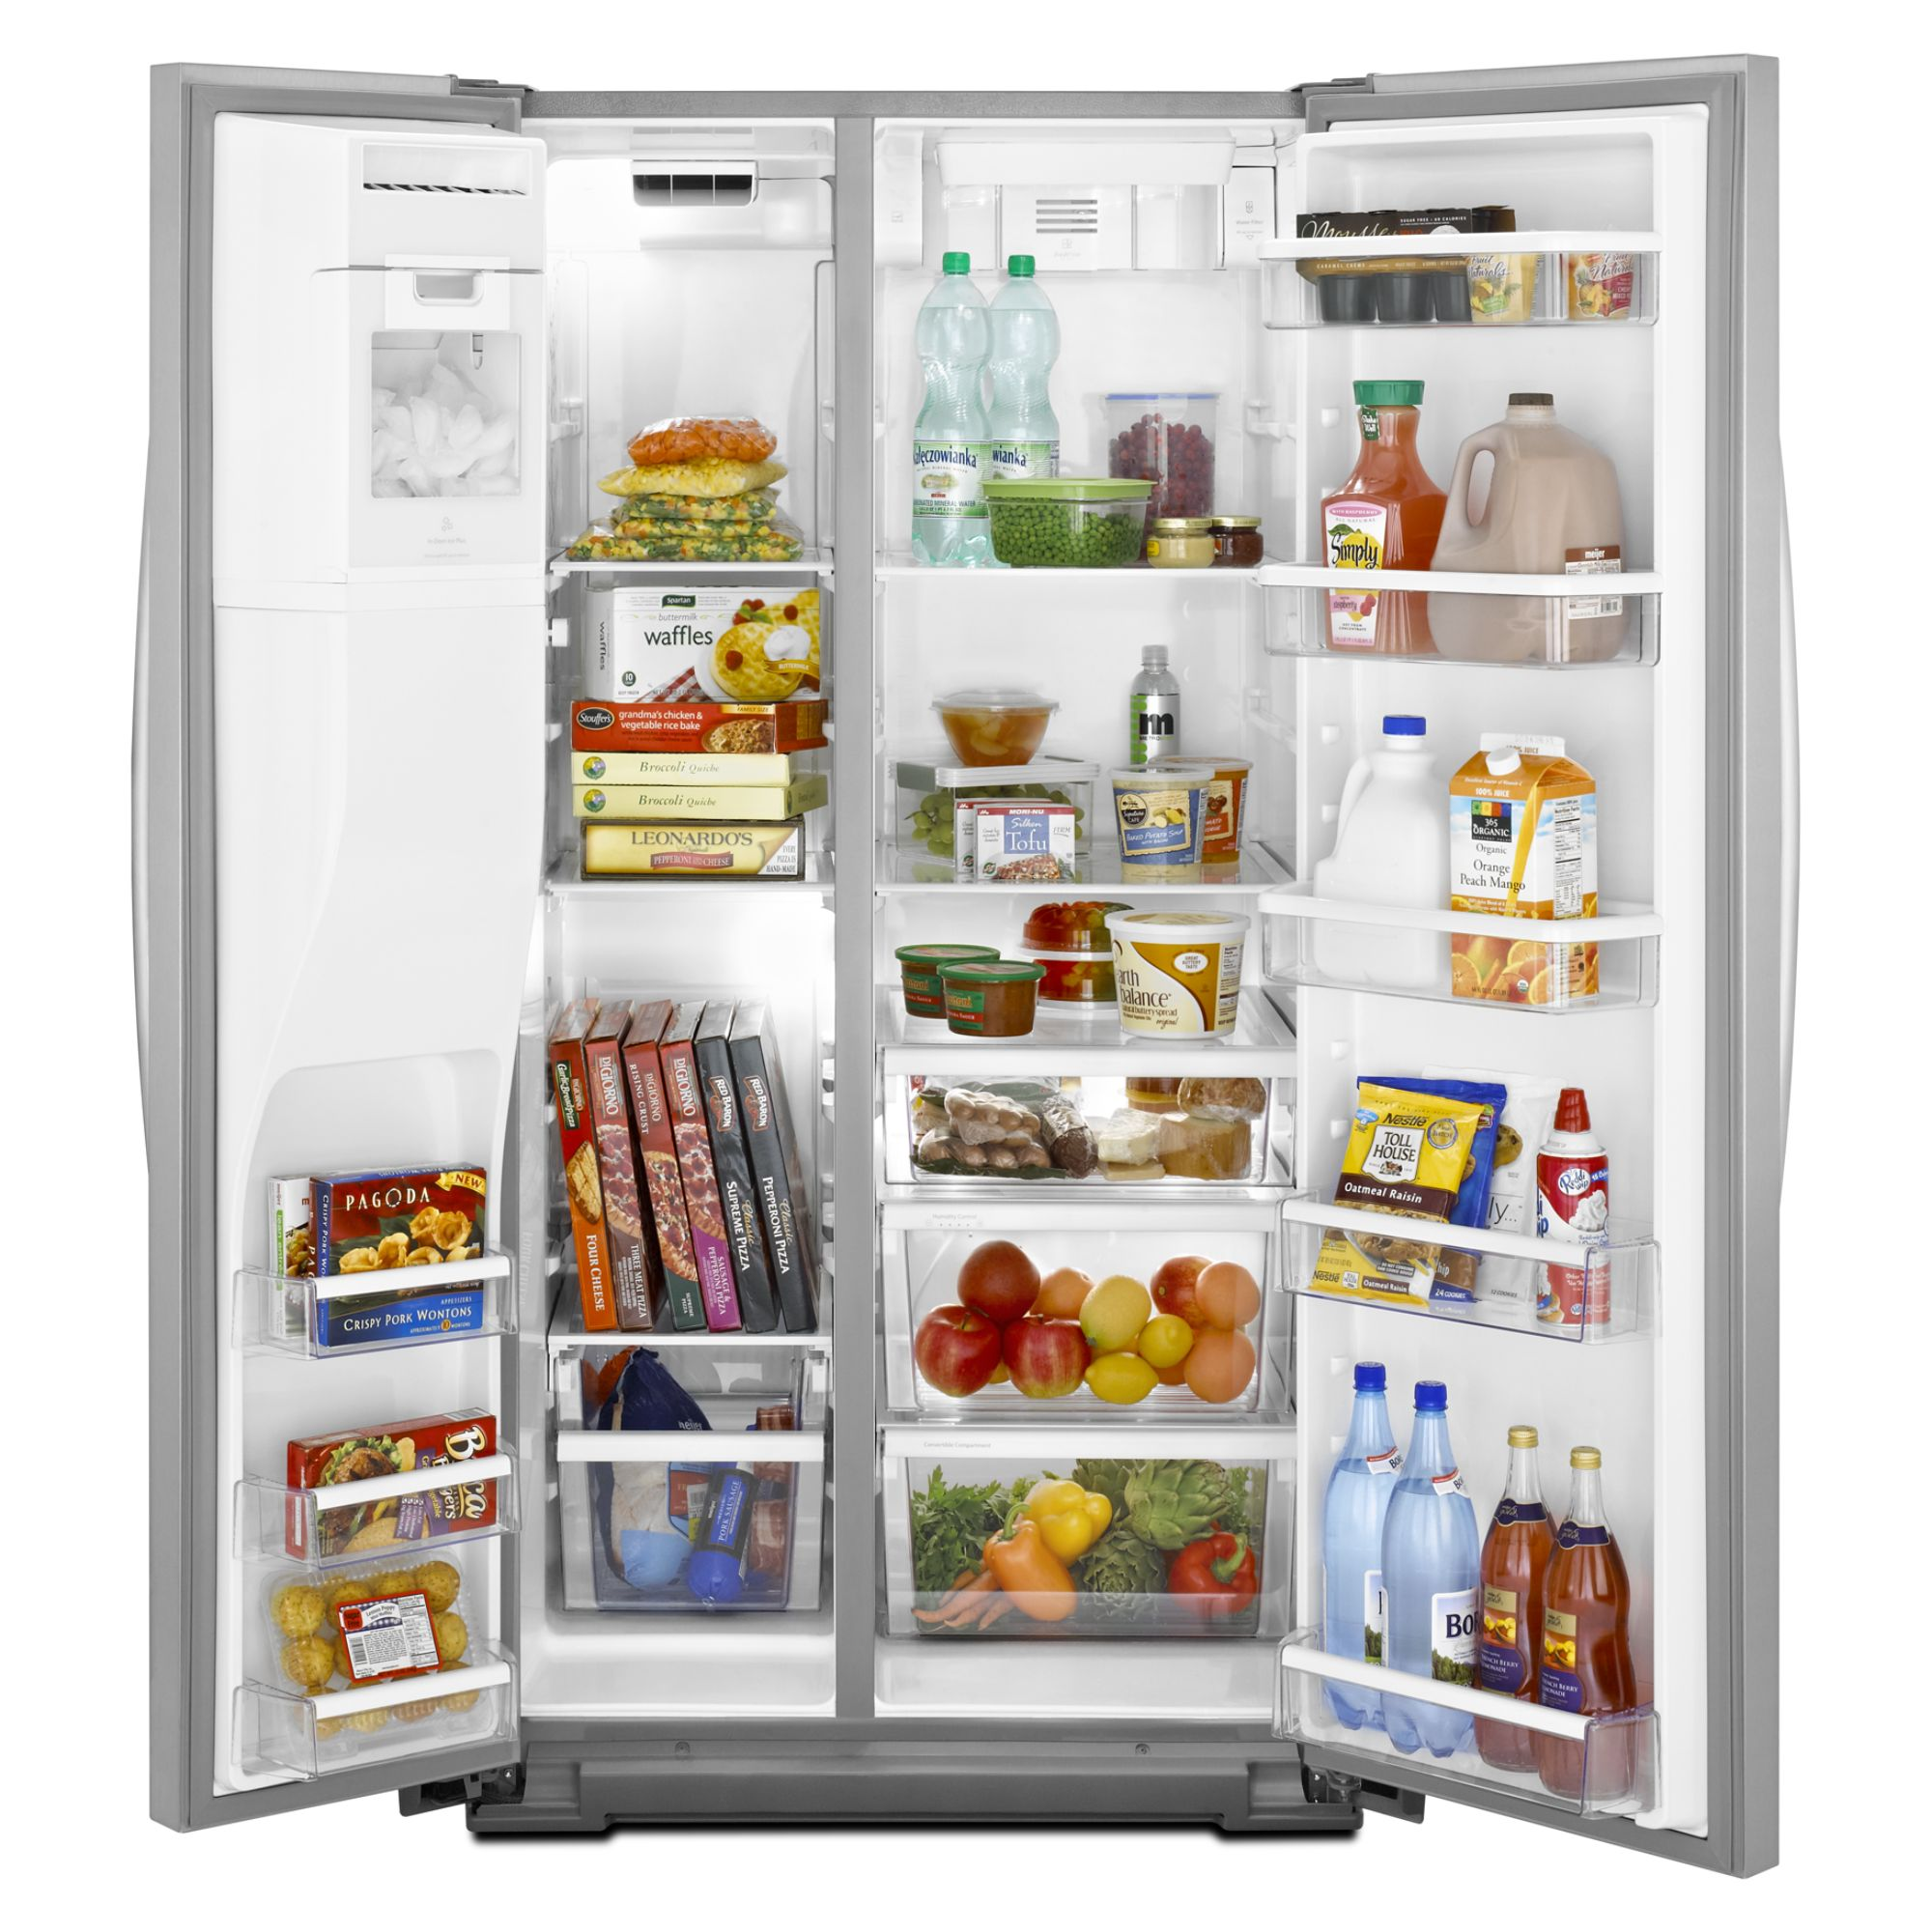 Whirlpool 26.4 cu. ft. Side-by-Side Refrigerator Stainless Look